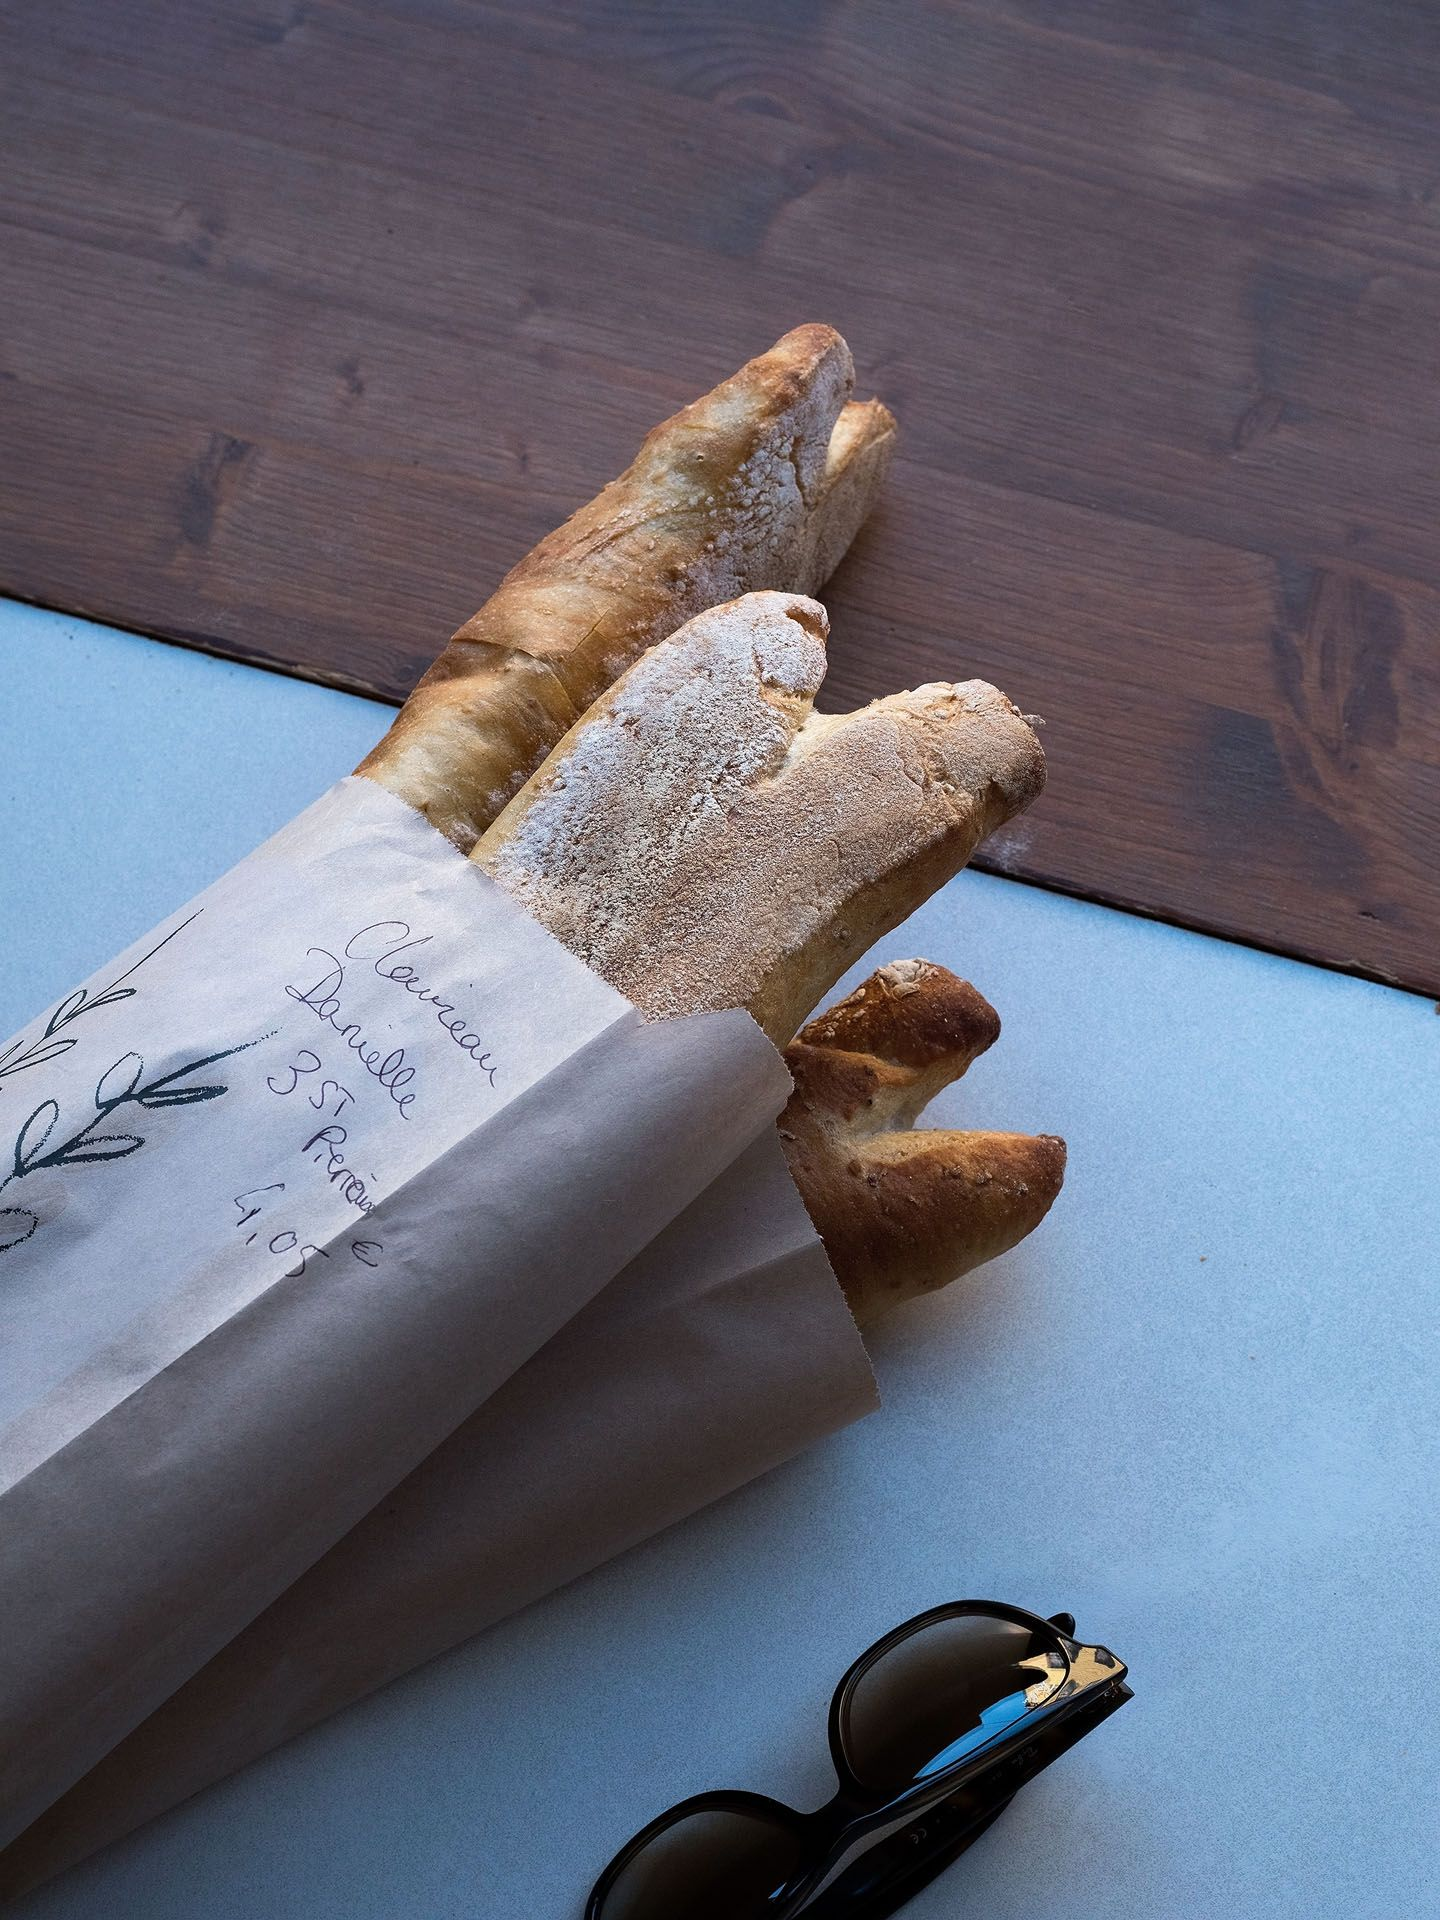 rustique french bread baguettes in brown wrapping paper by Guillaume Simoneau in Saint-Pierre-et-Miquelon for M le mag